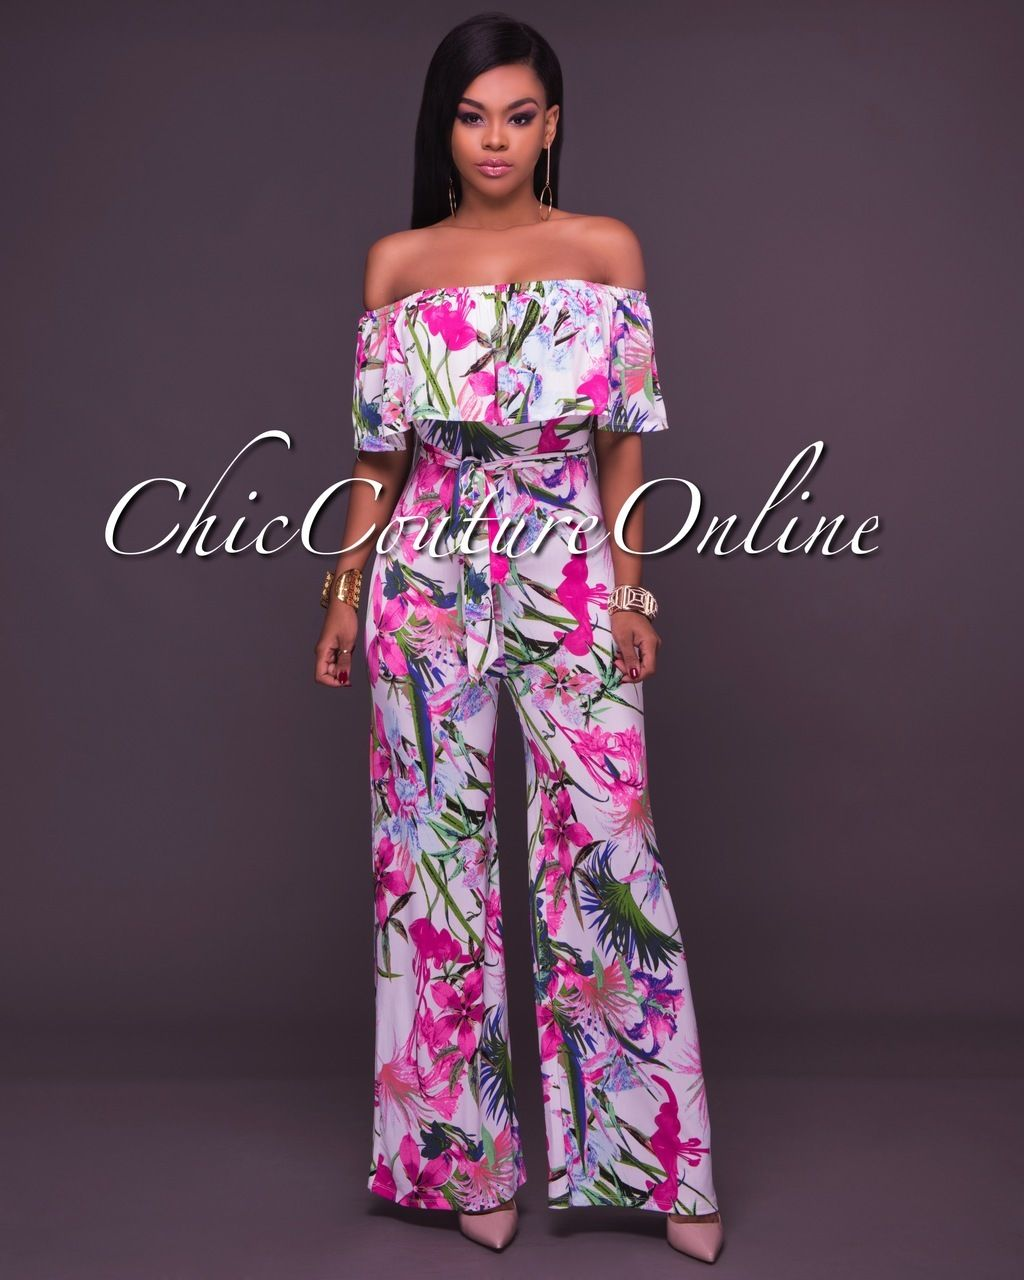 Pin by Chic Couture Online on Clothing ~ Chic Couture Online ...